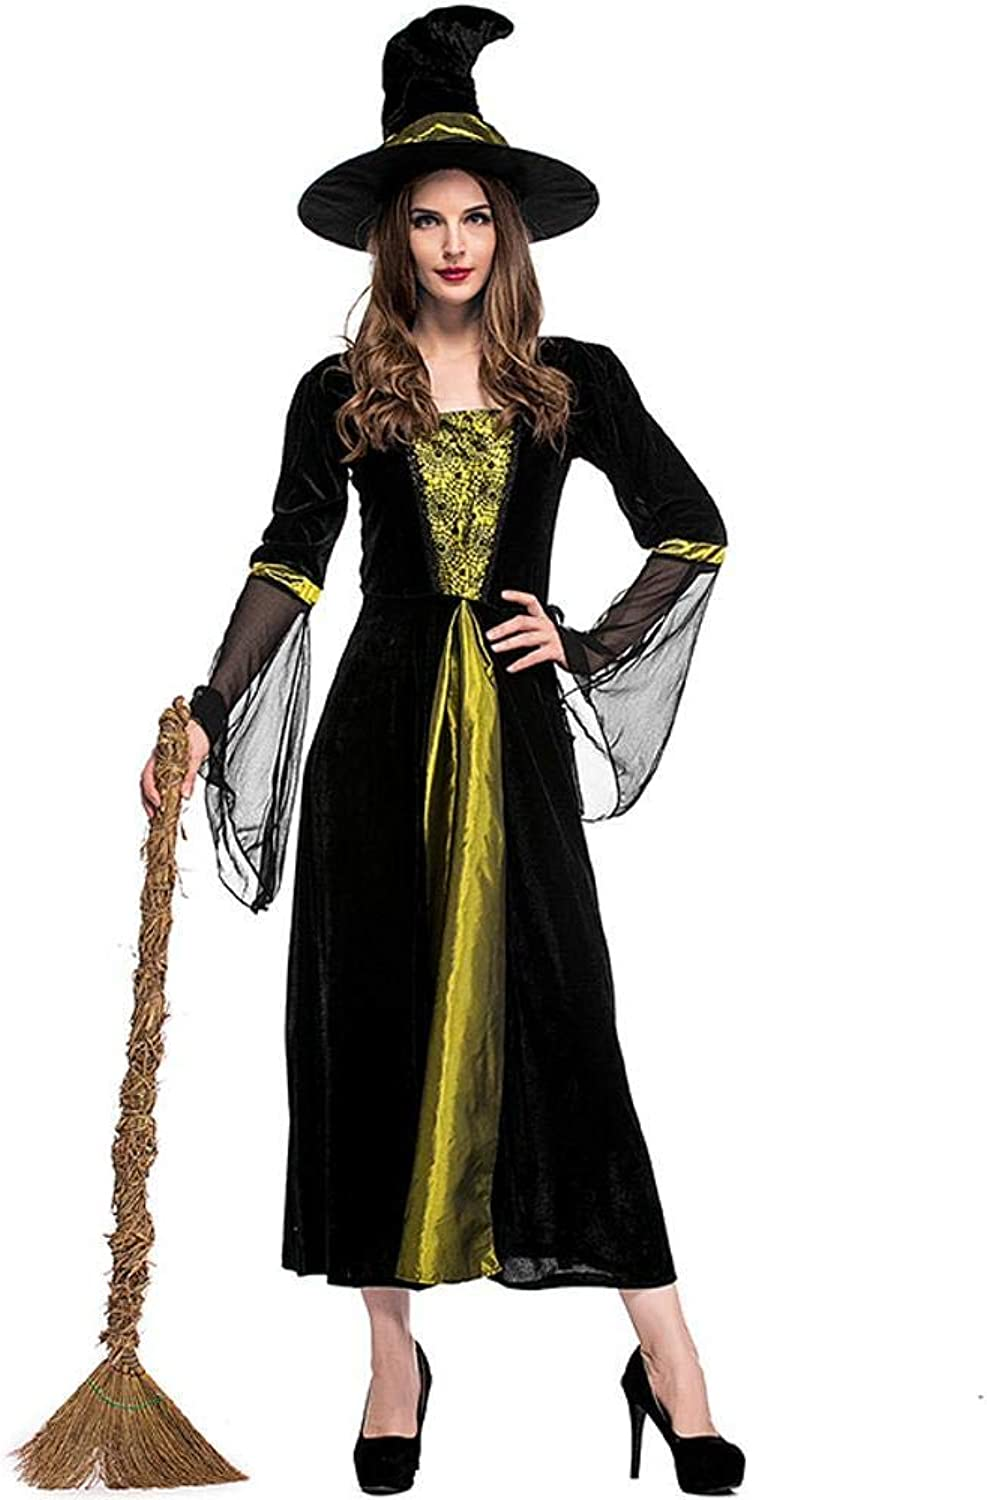 Olydmsky Halloween Costumes Women Halloween Witch Costume Adult Role Play Green Black Witch Performance Costume